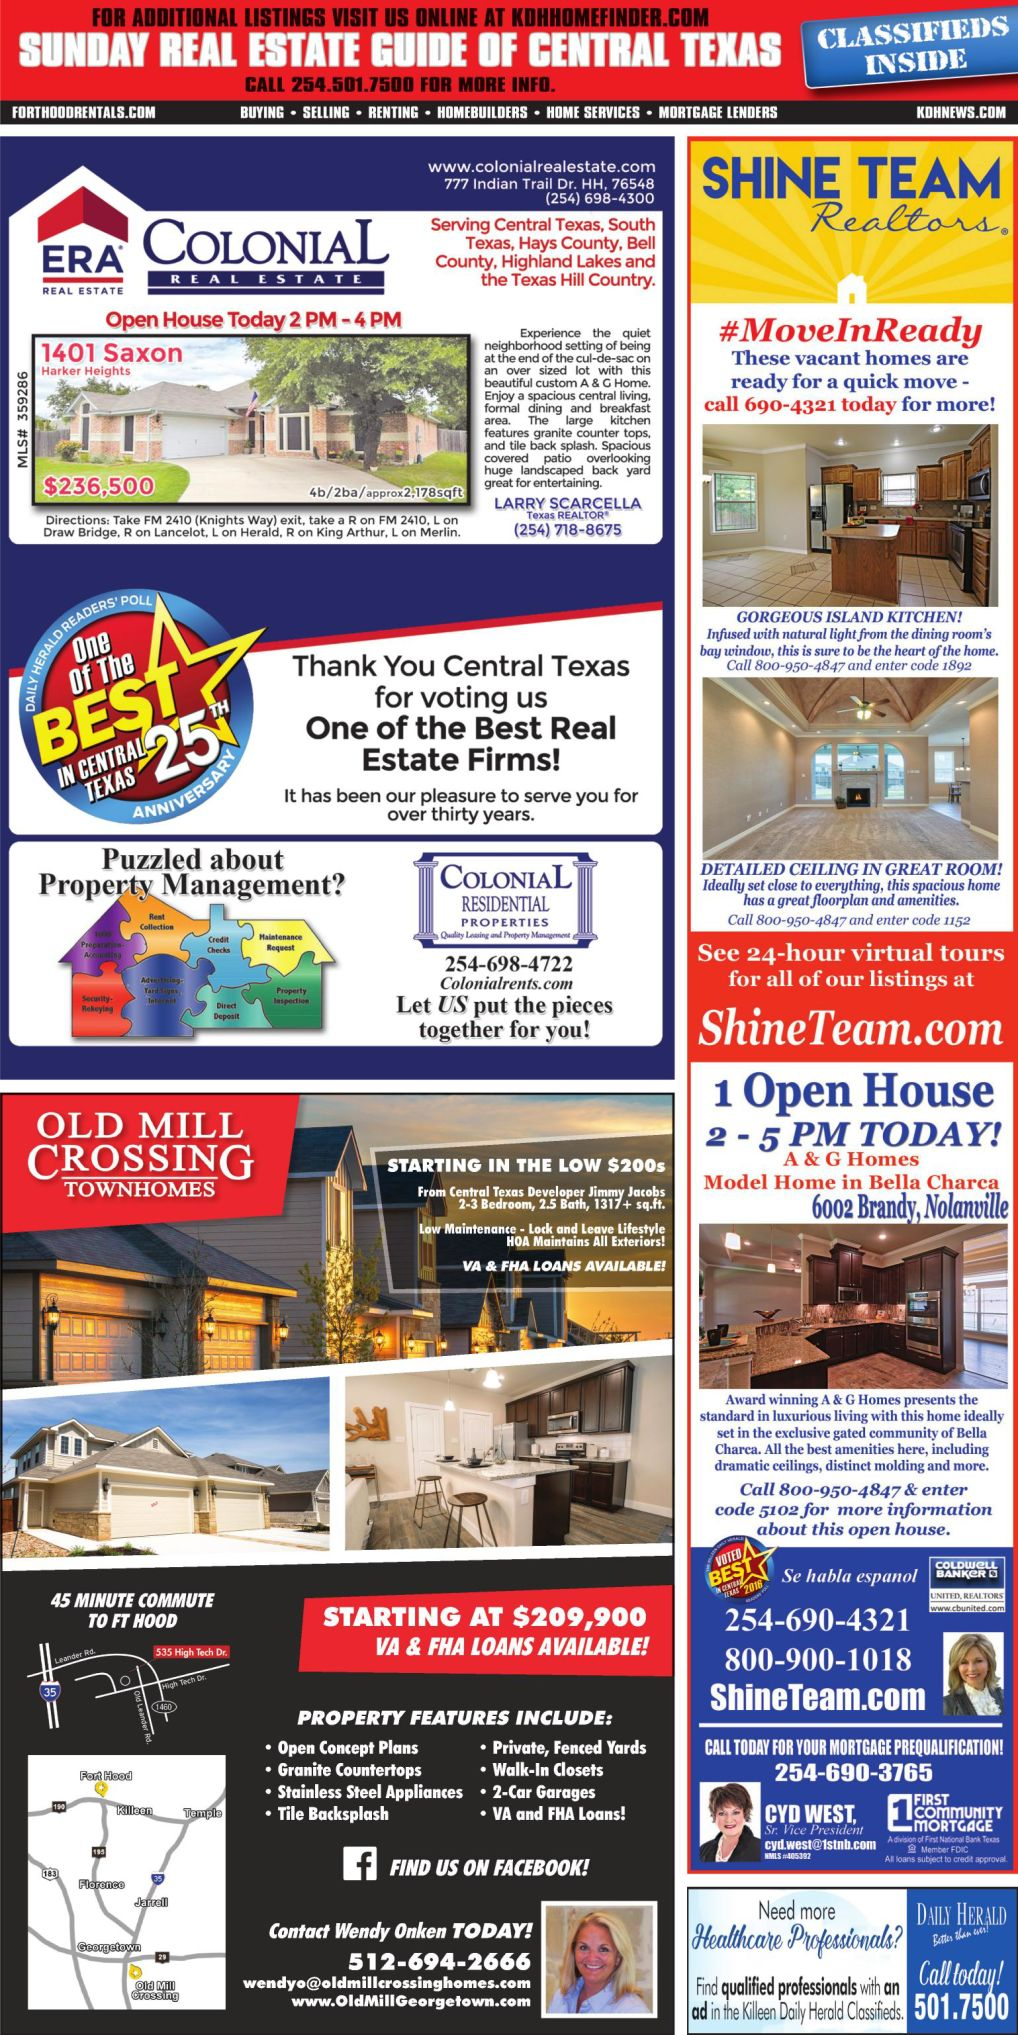 Sunday Real Estate Guide Feb. 3rd